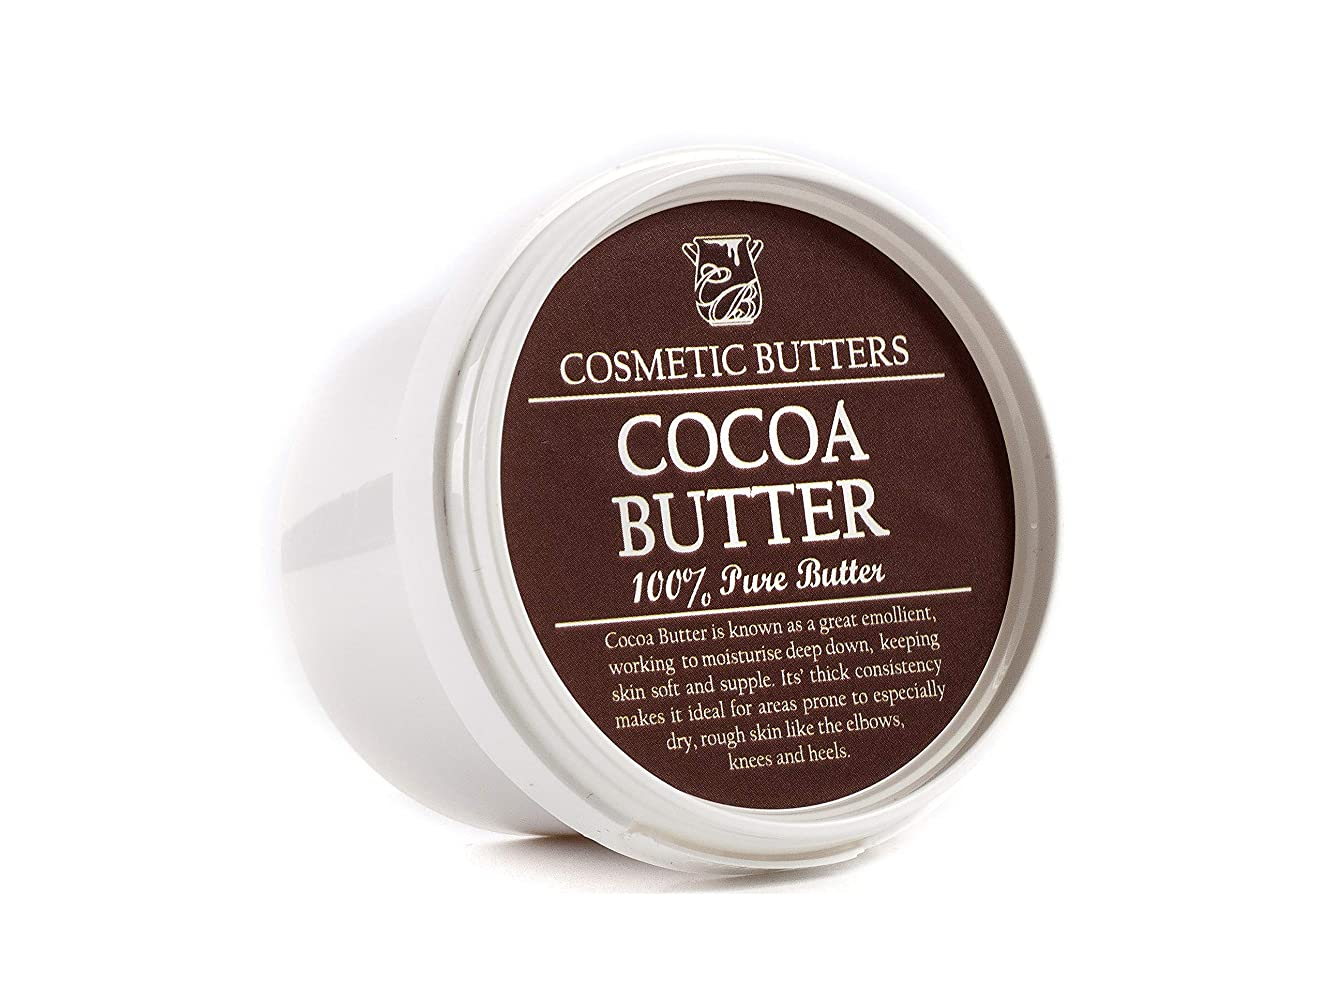 応用スプリット後世Cocoa Butter Deodorised - 100% Pure and Natural - 100g